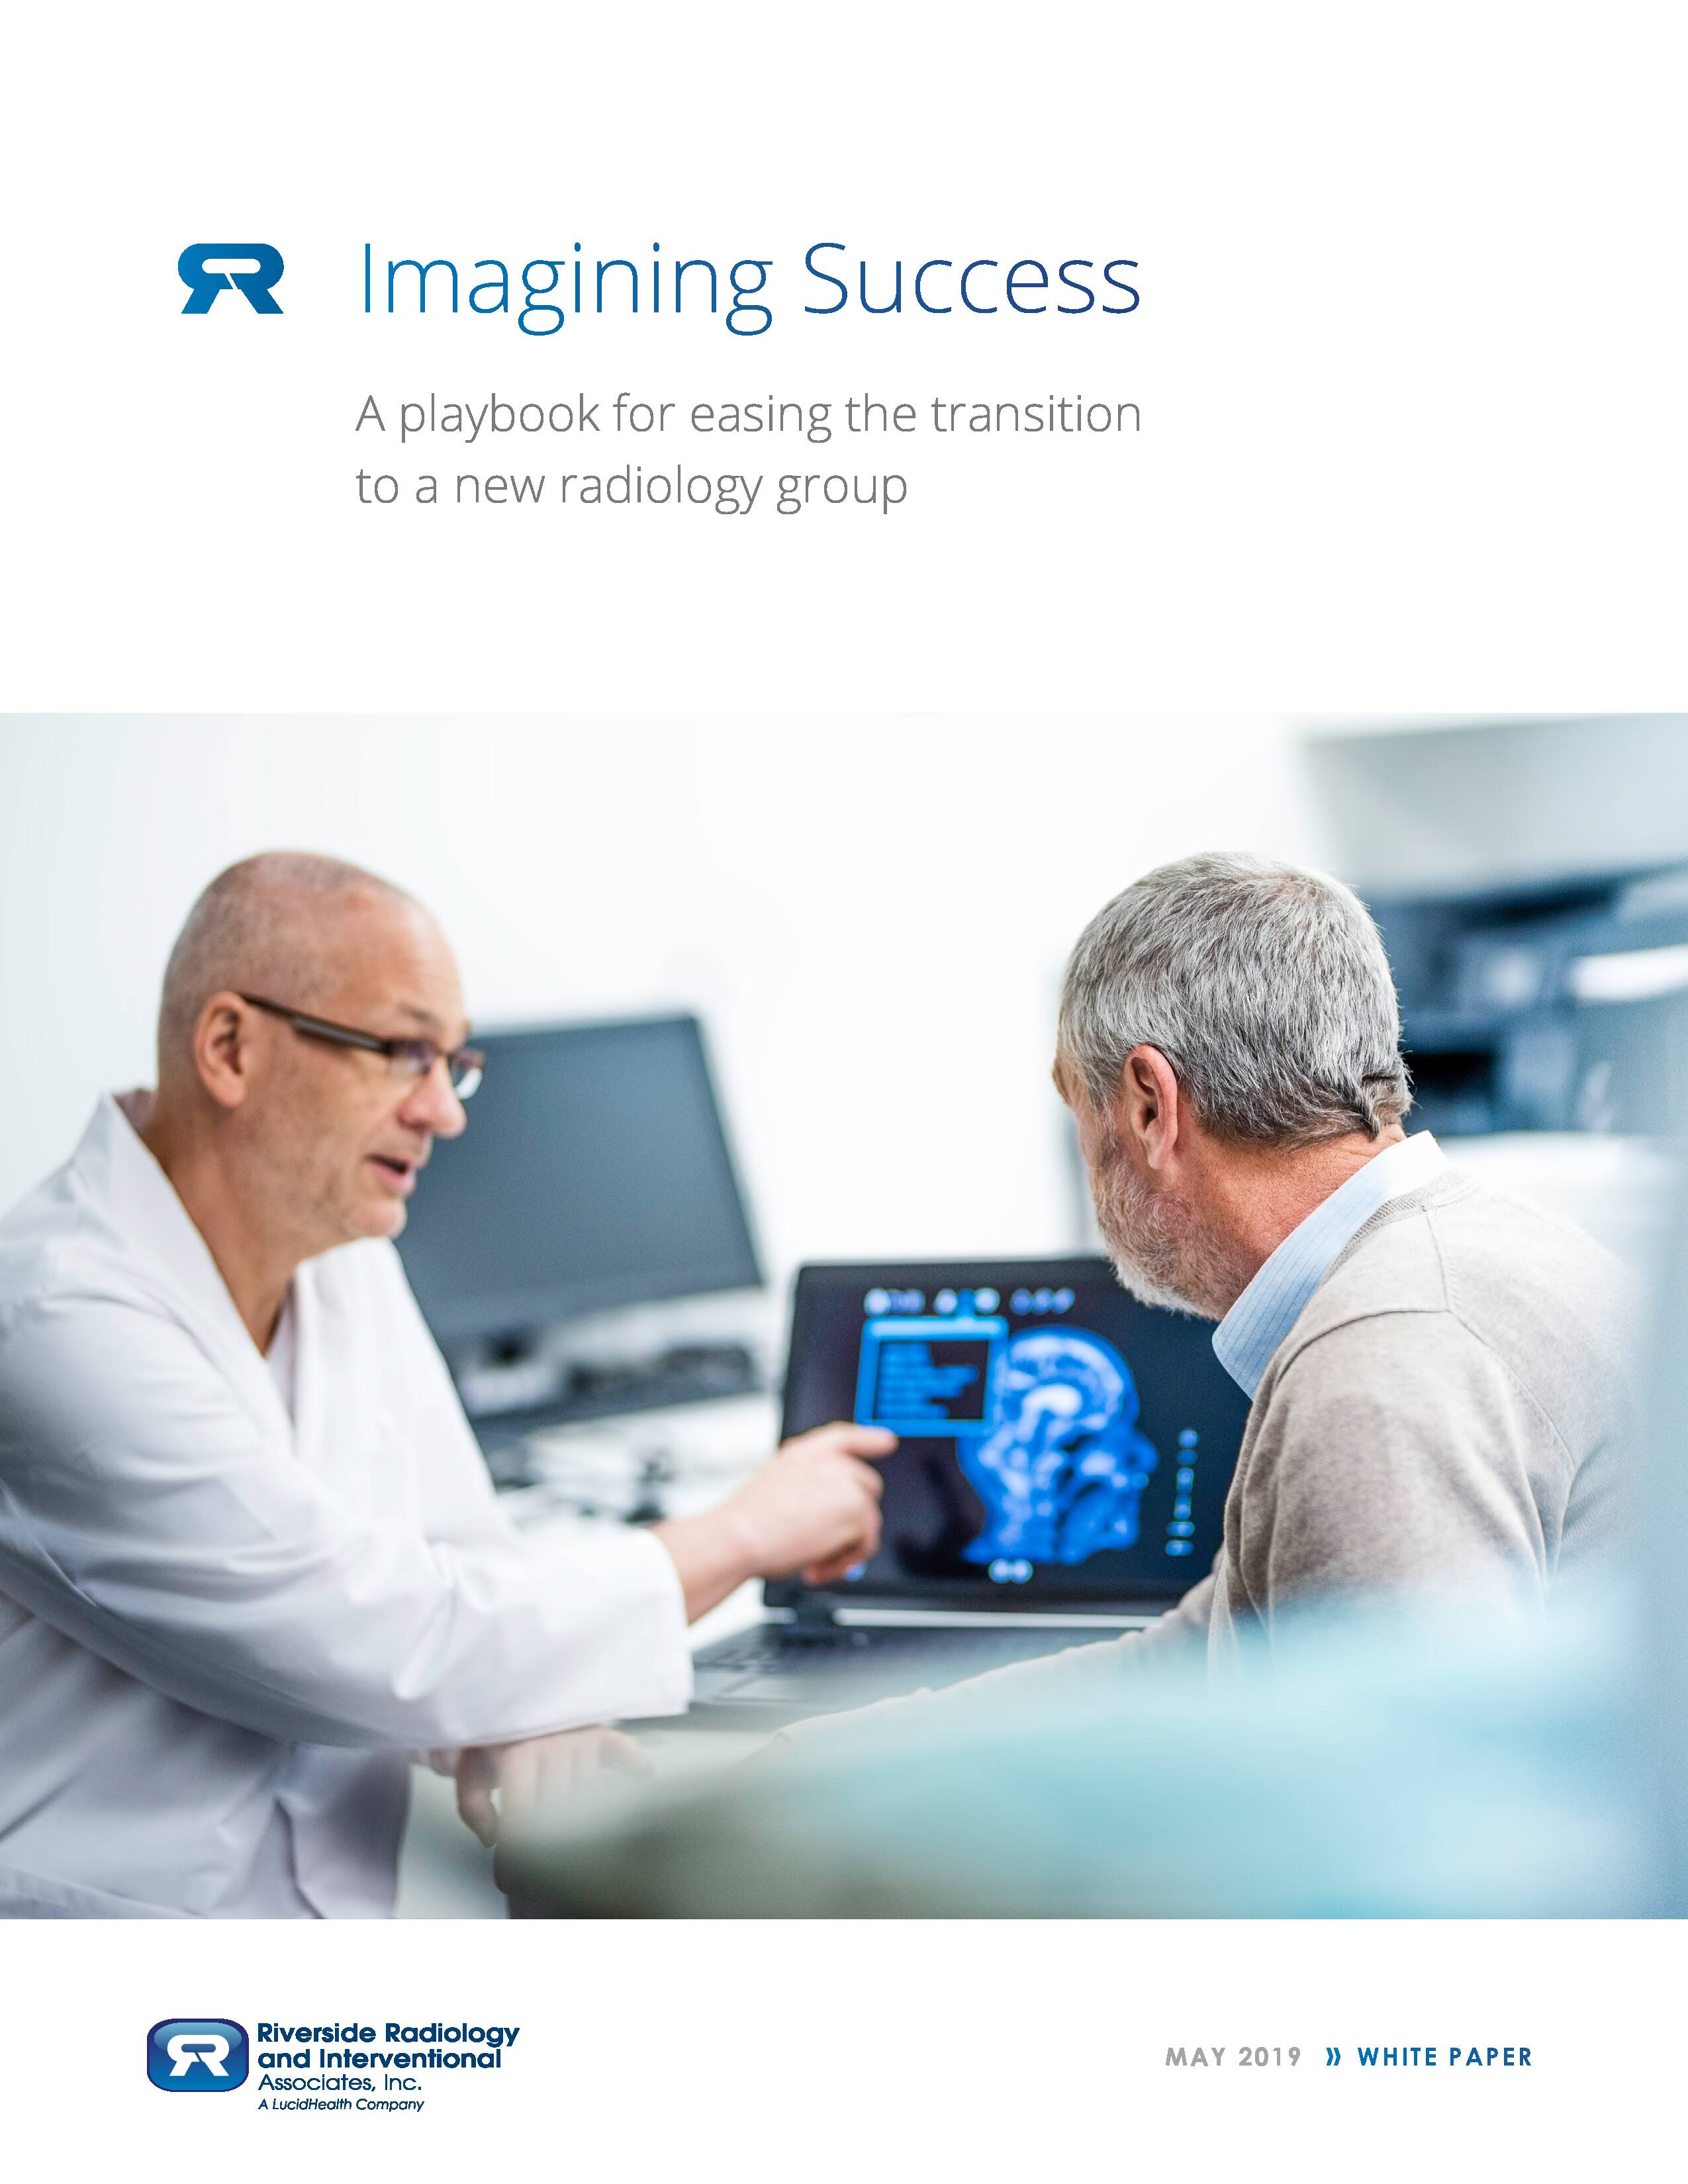 Imagining Success: A playbook for easing the transition to a new radiology group